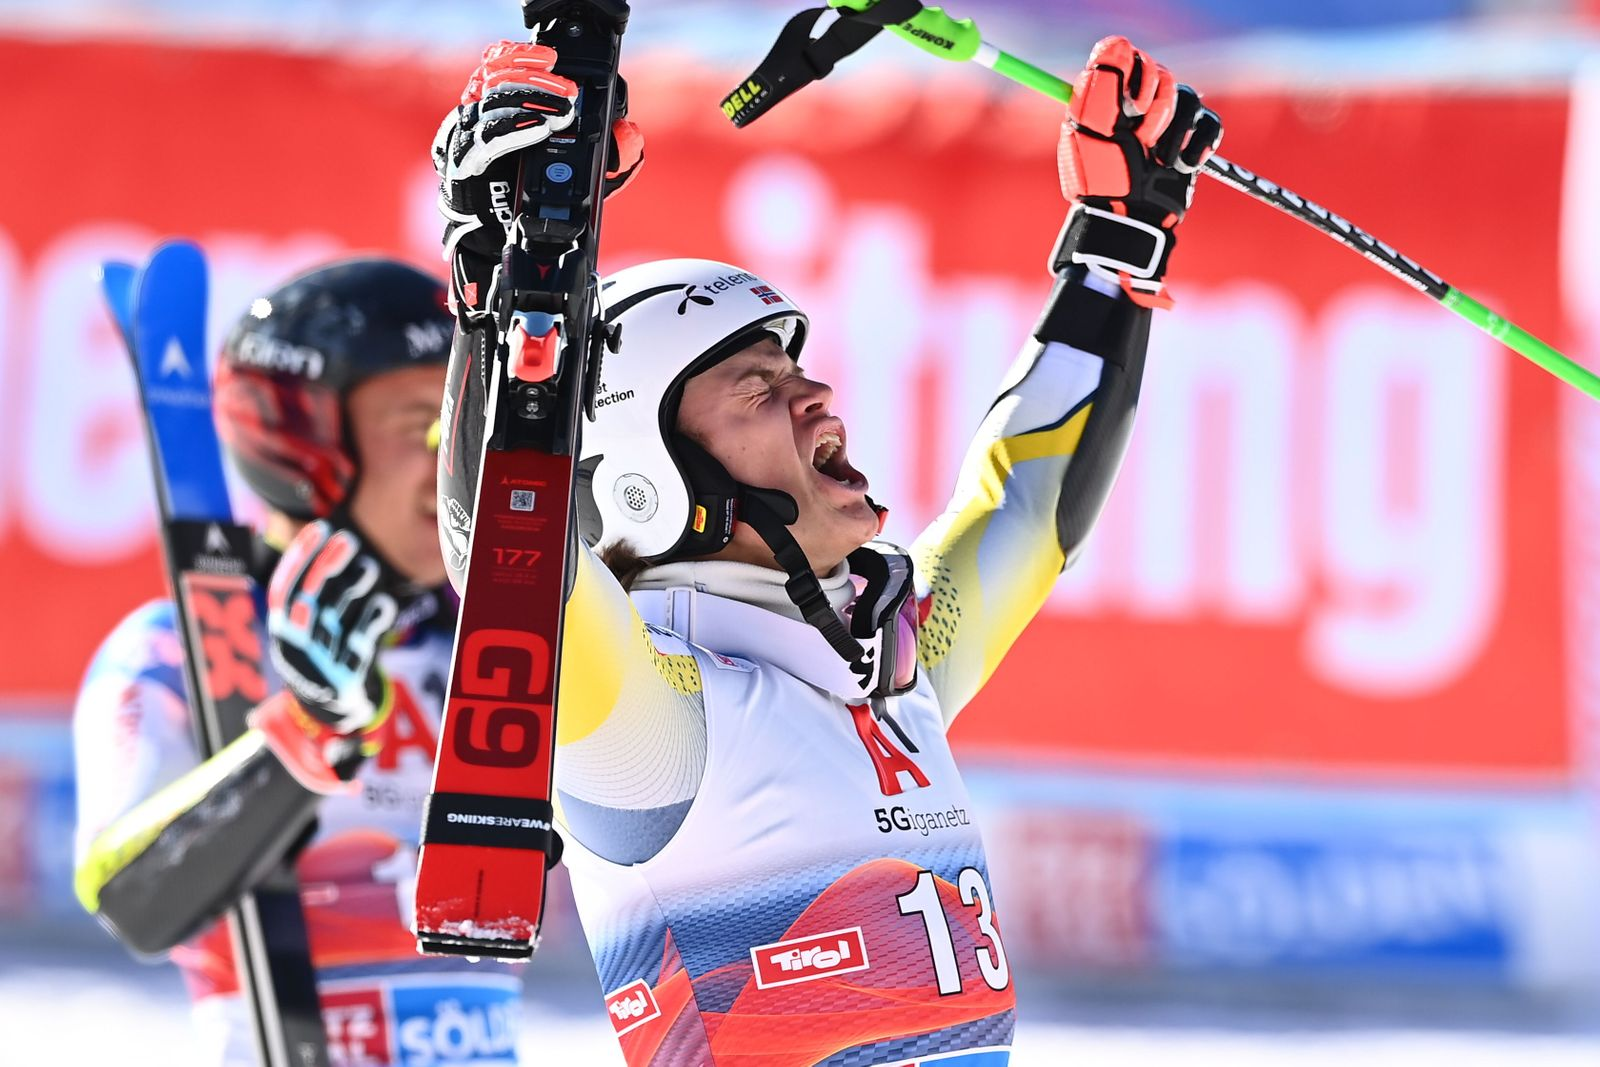 SKI-ALPINE-WORLD-AUT-GIANT SLALOM-MEN